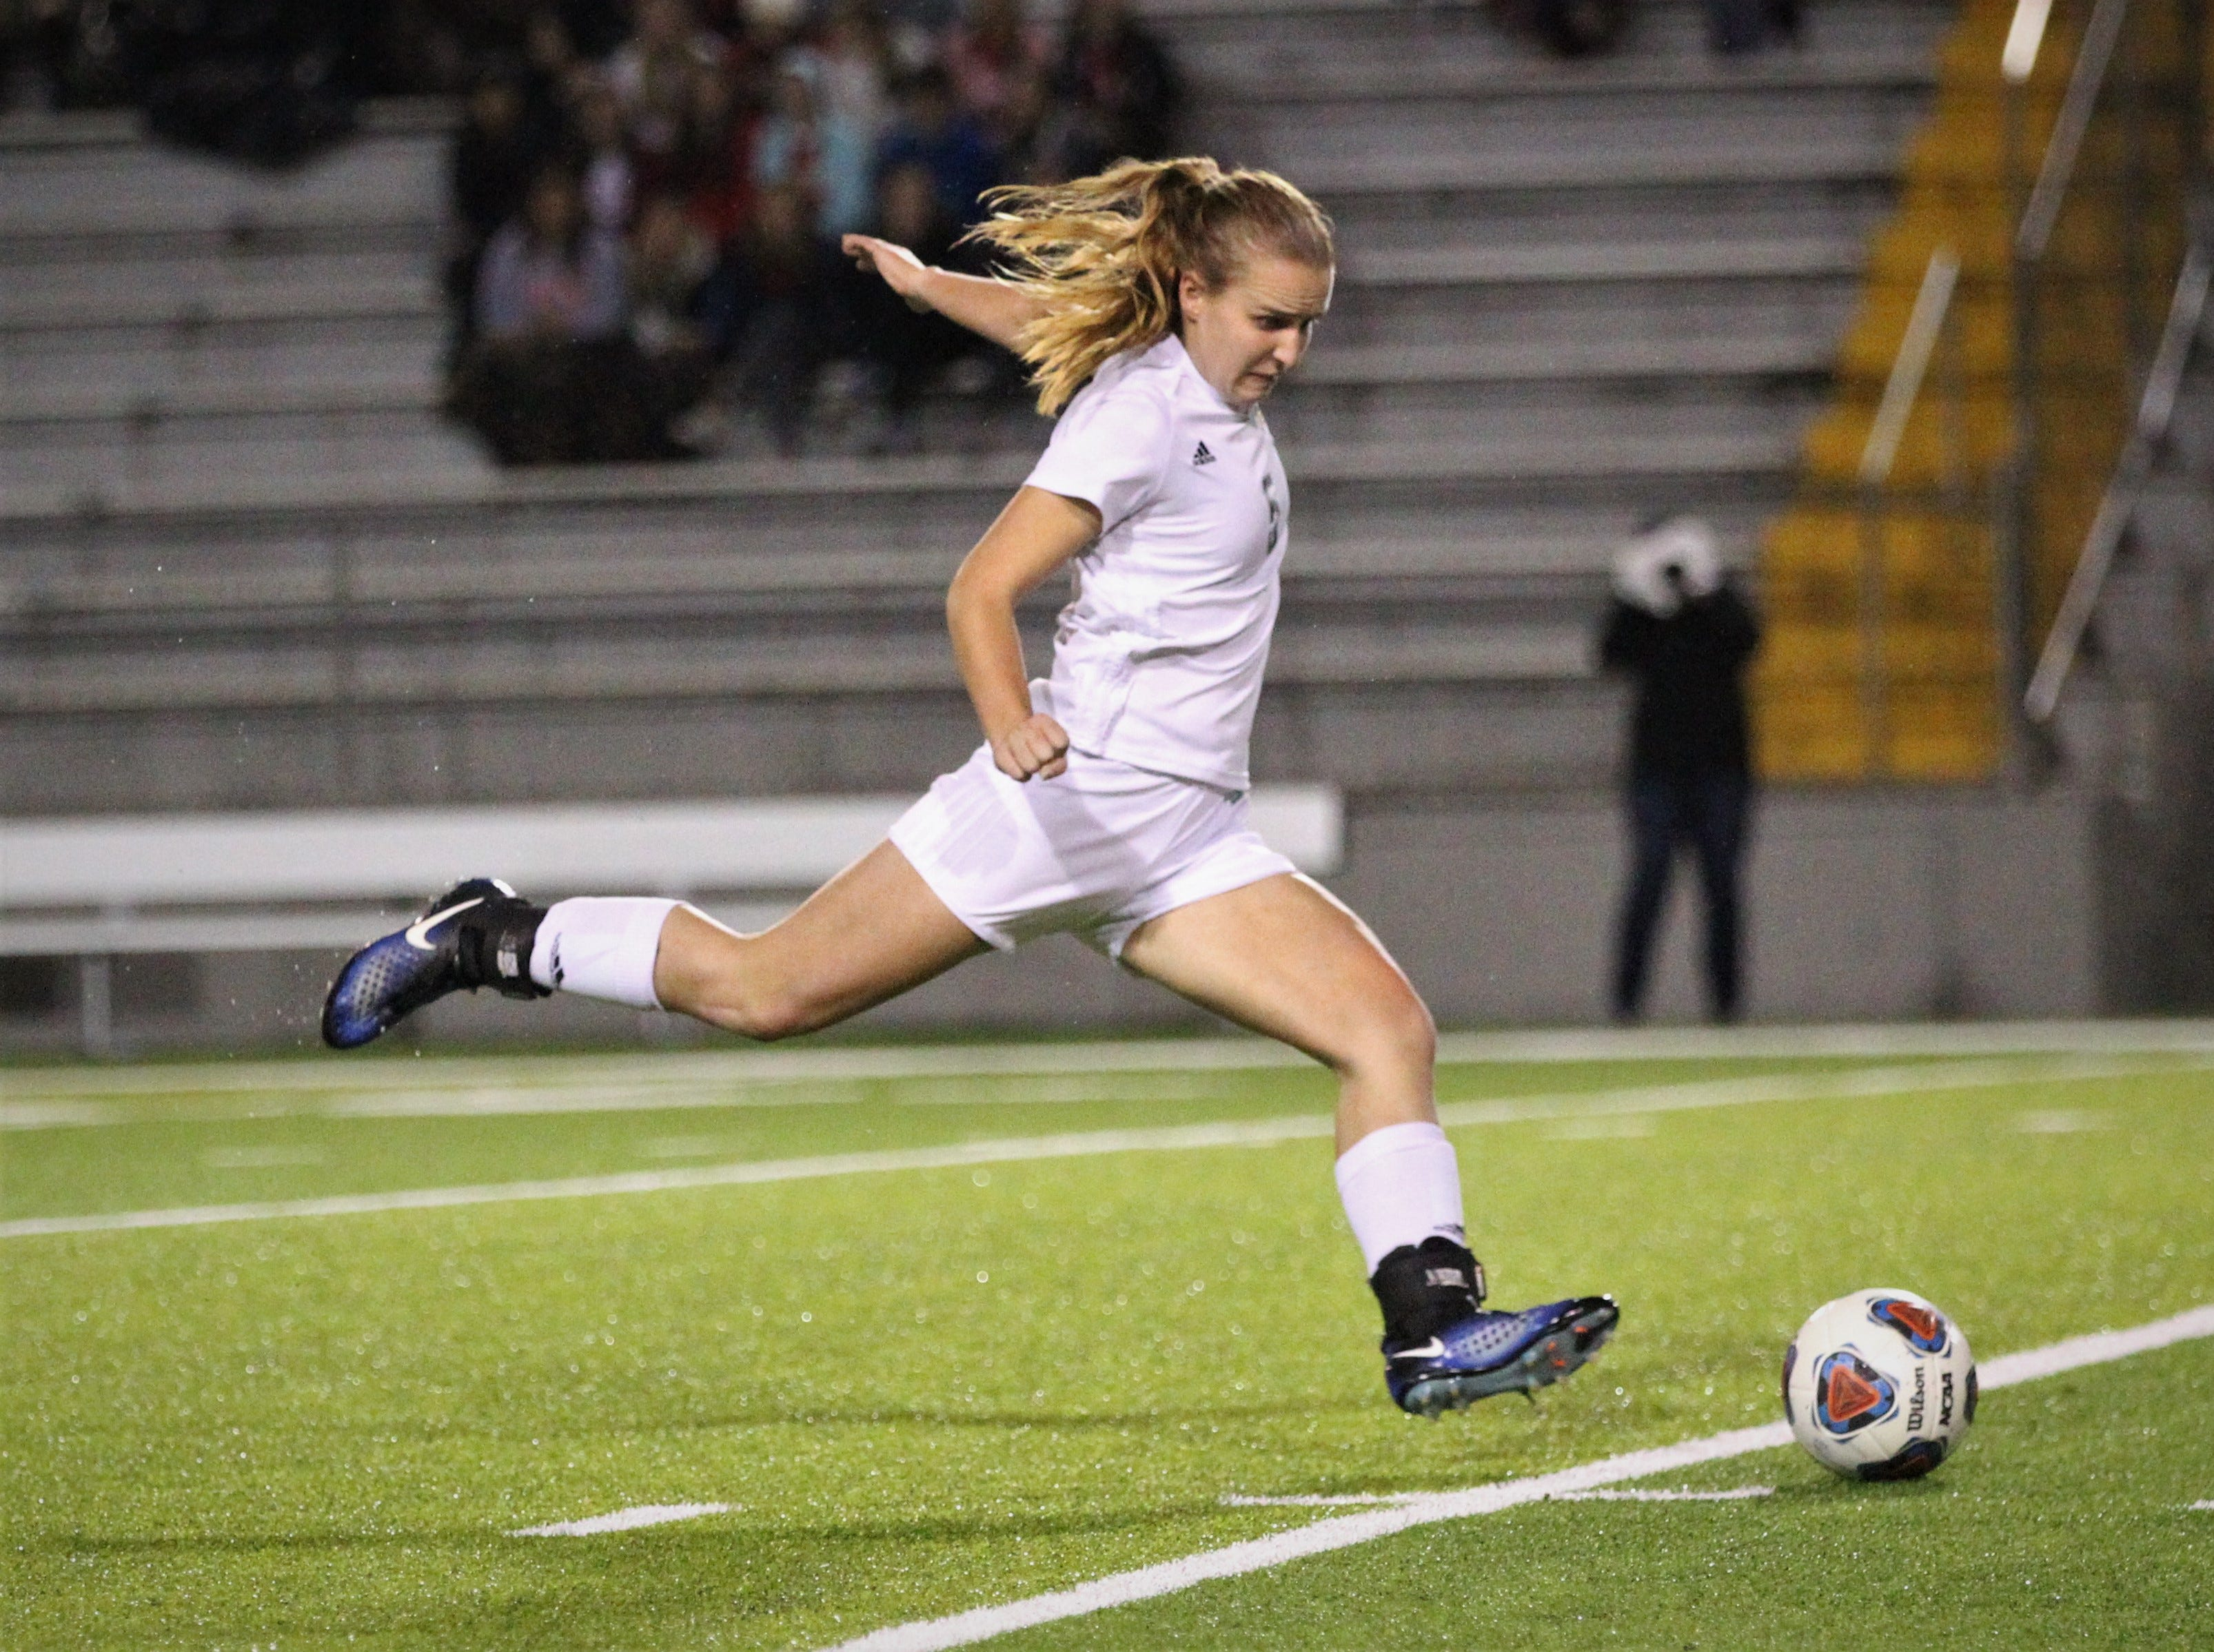 Leon's girls soccer team beat Lincoln 2-1 in the District 2-4A championship at Gene Cox Stadium on Feb. 1, 2019.